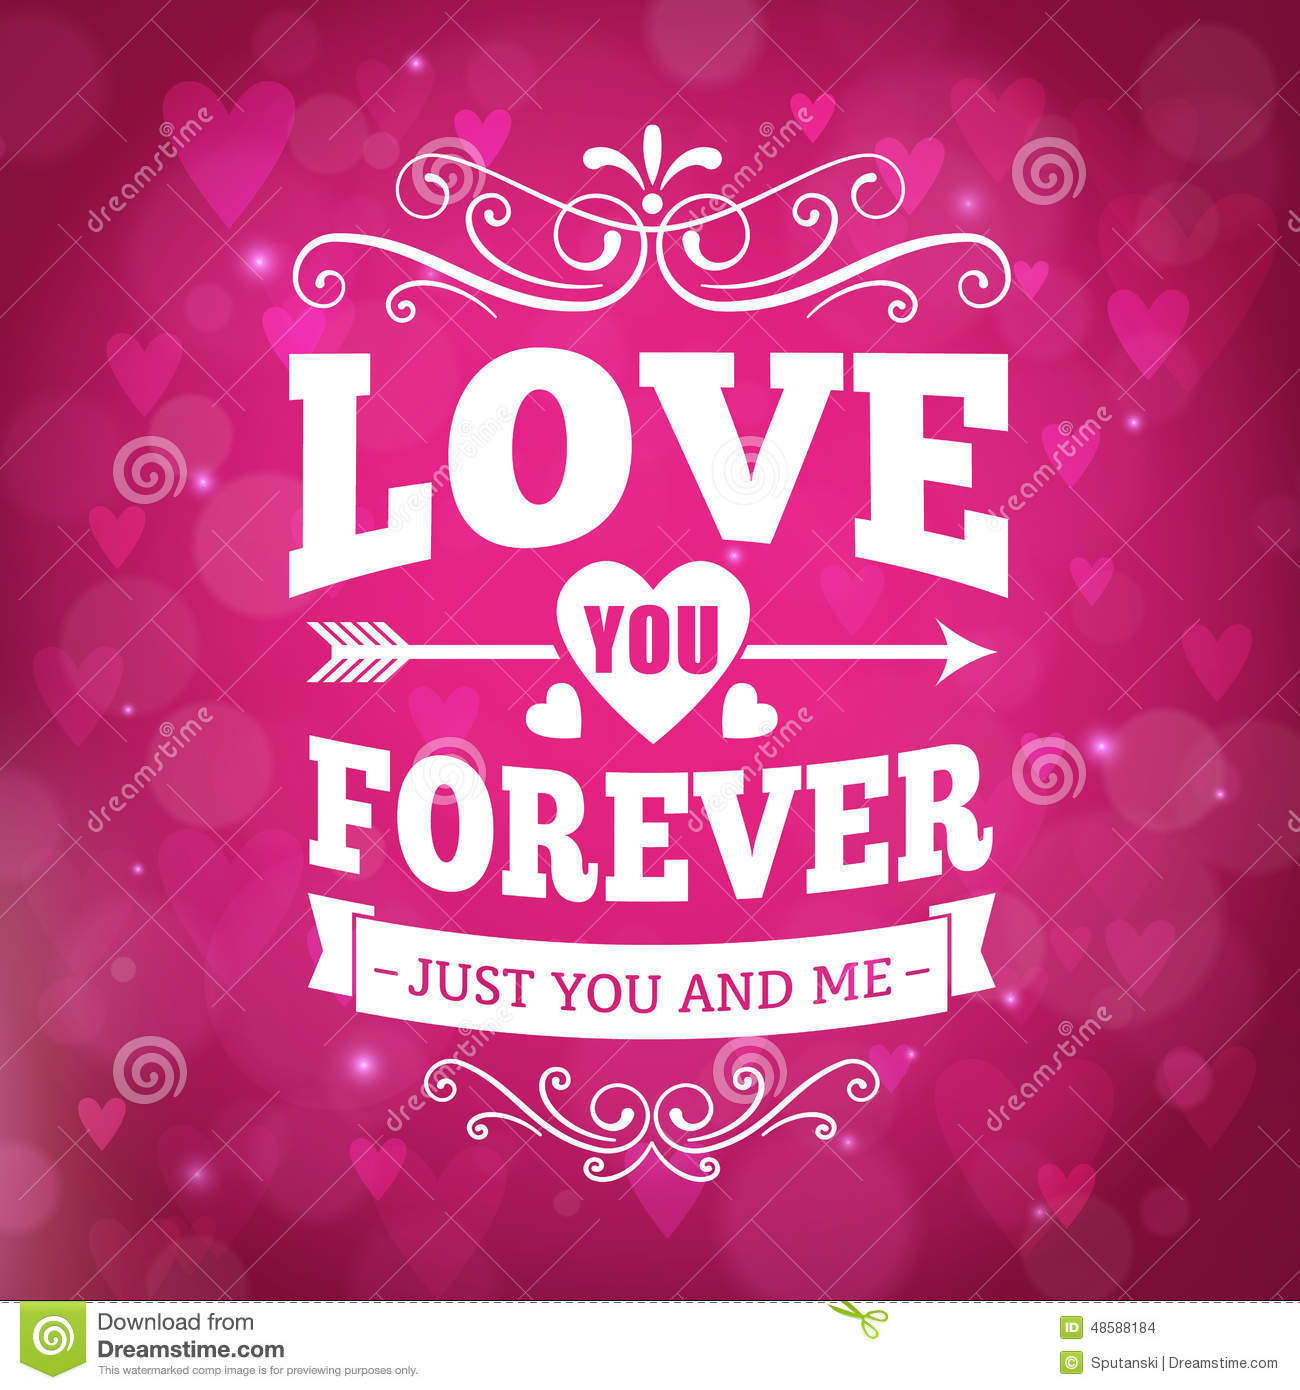 love you forever Buy love you forever by robert munsch, sheila mcgraw (isbn: 0000920668373) from amazon's book store everyday low prices and free delivery on eligible orders.